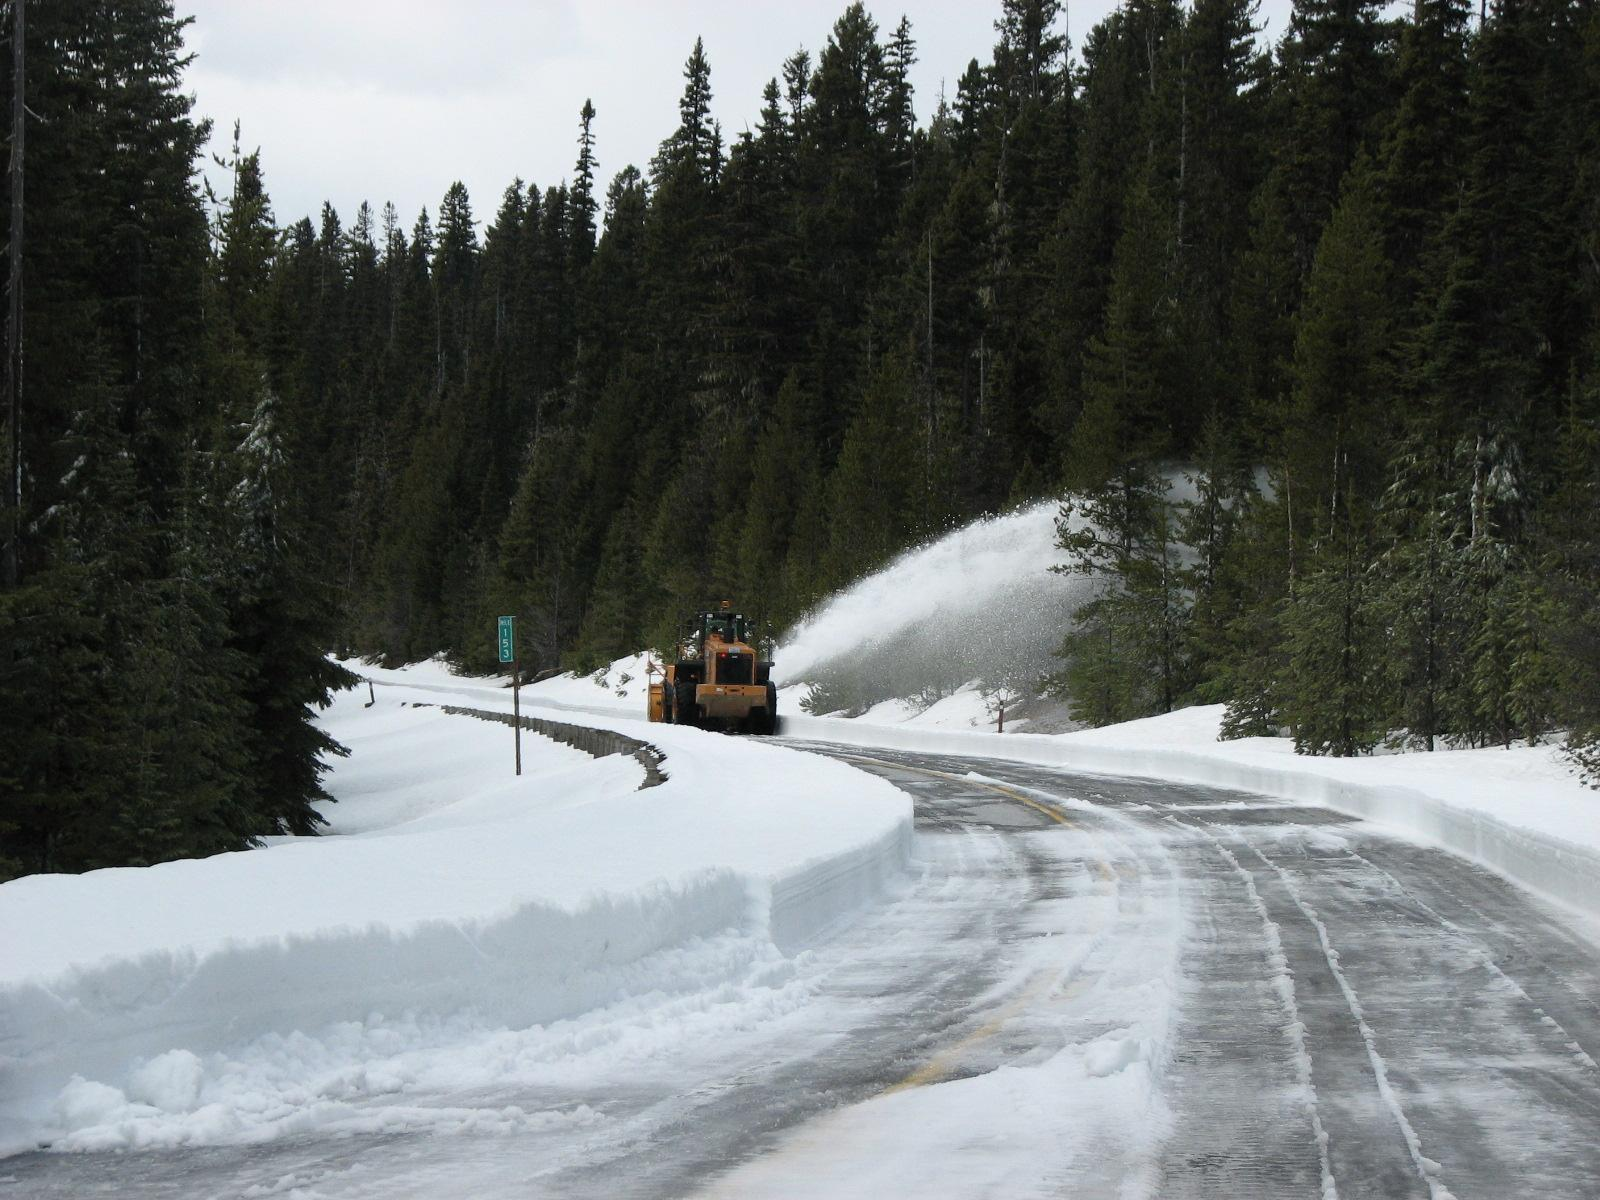 WSDOT crews work to clear SR-20/North Cascades Highway in time for a May 16 opening. (Photo: Washington State Department of Transportation)